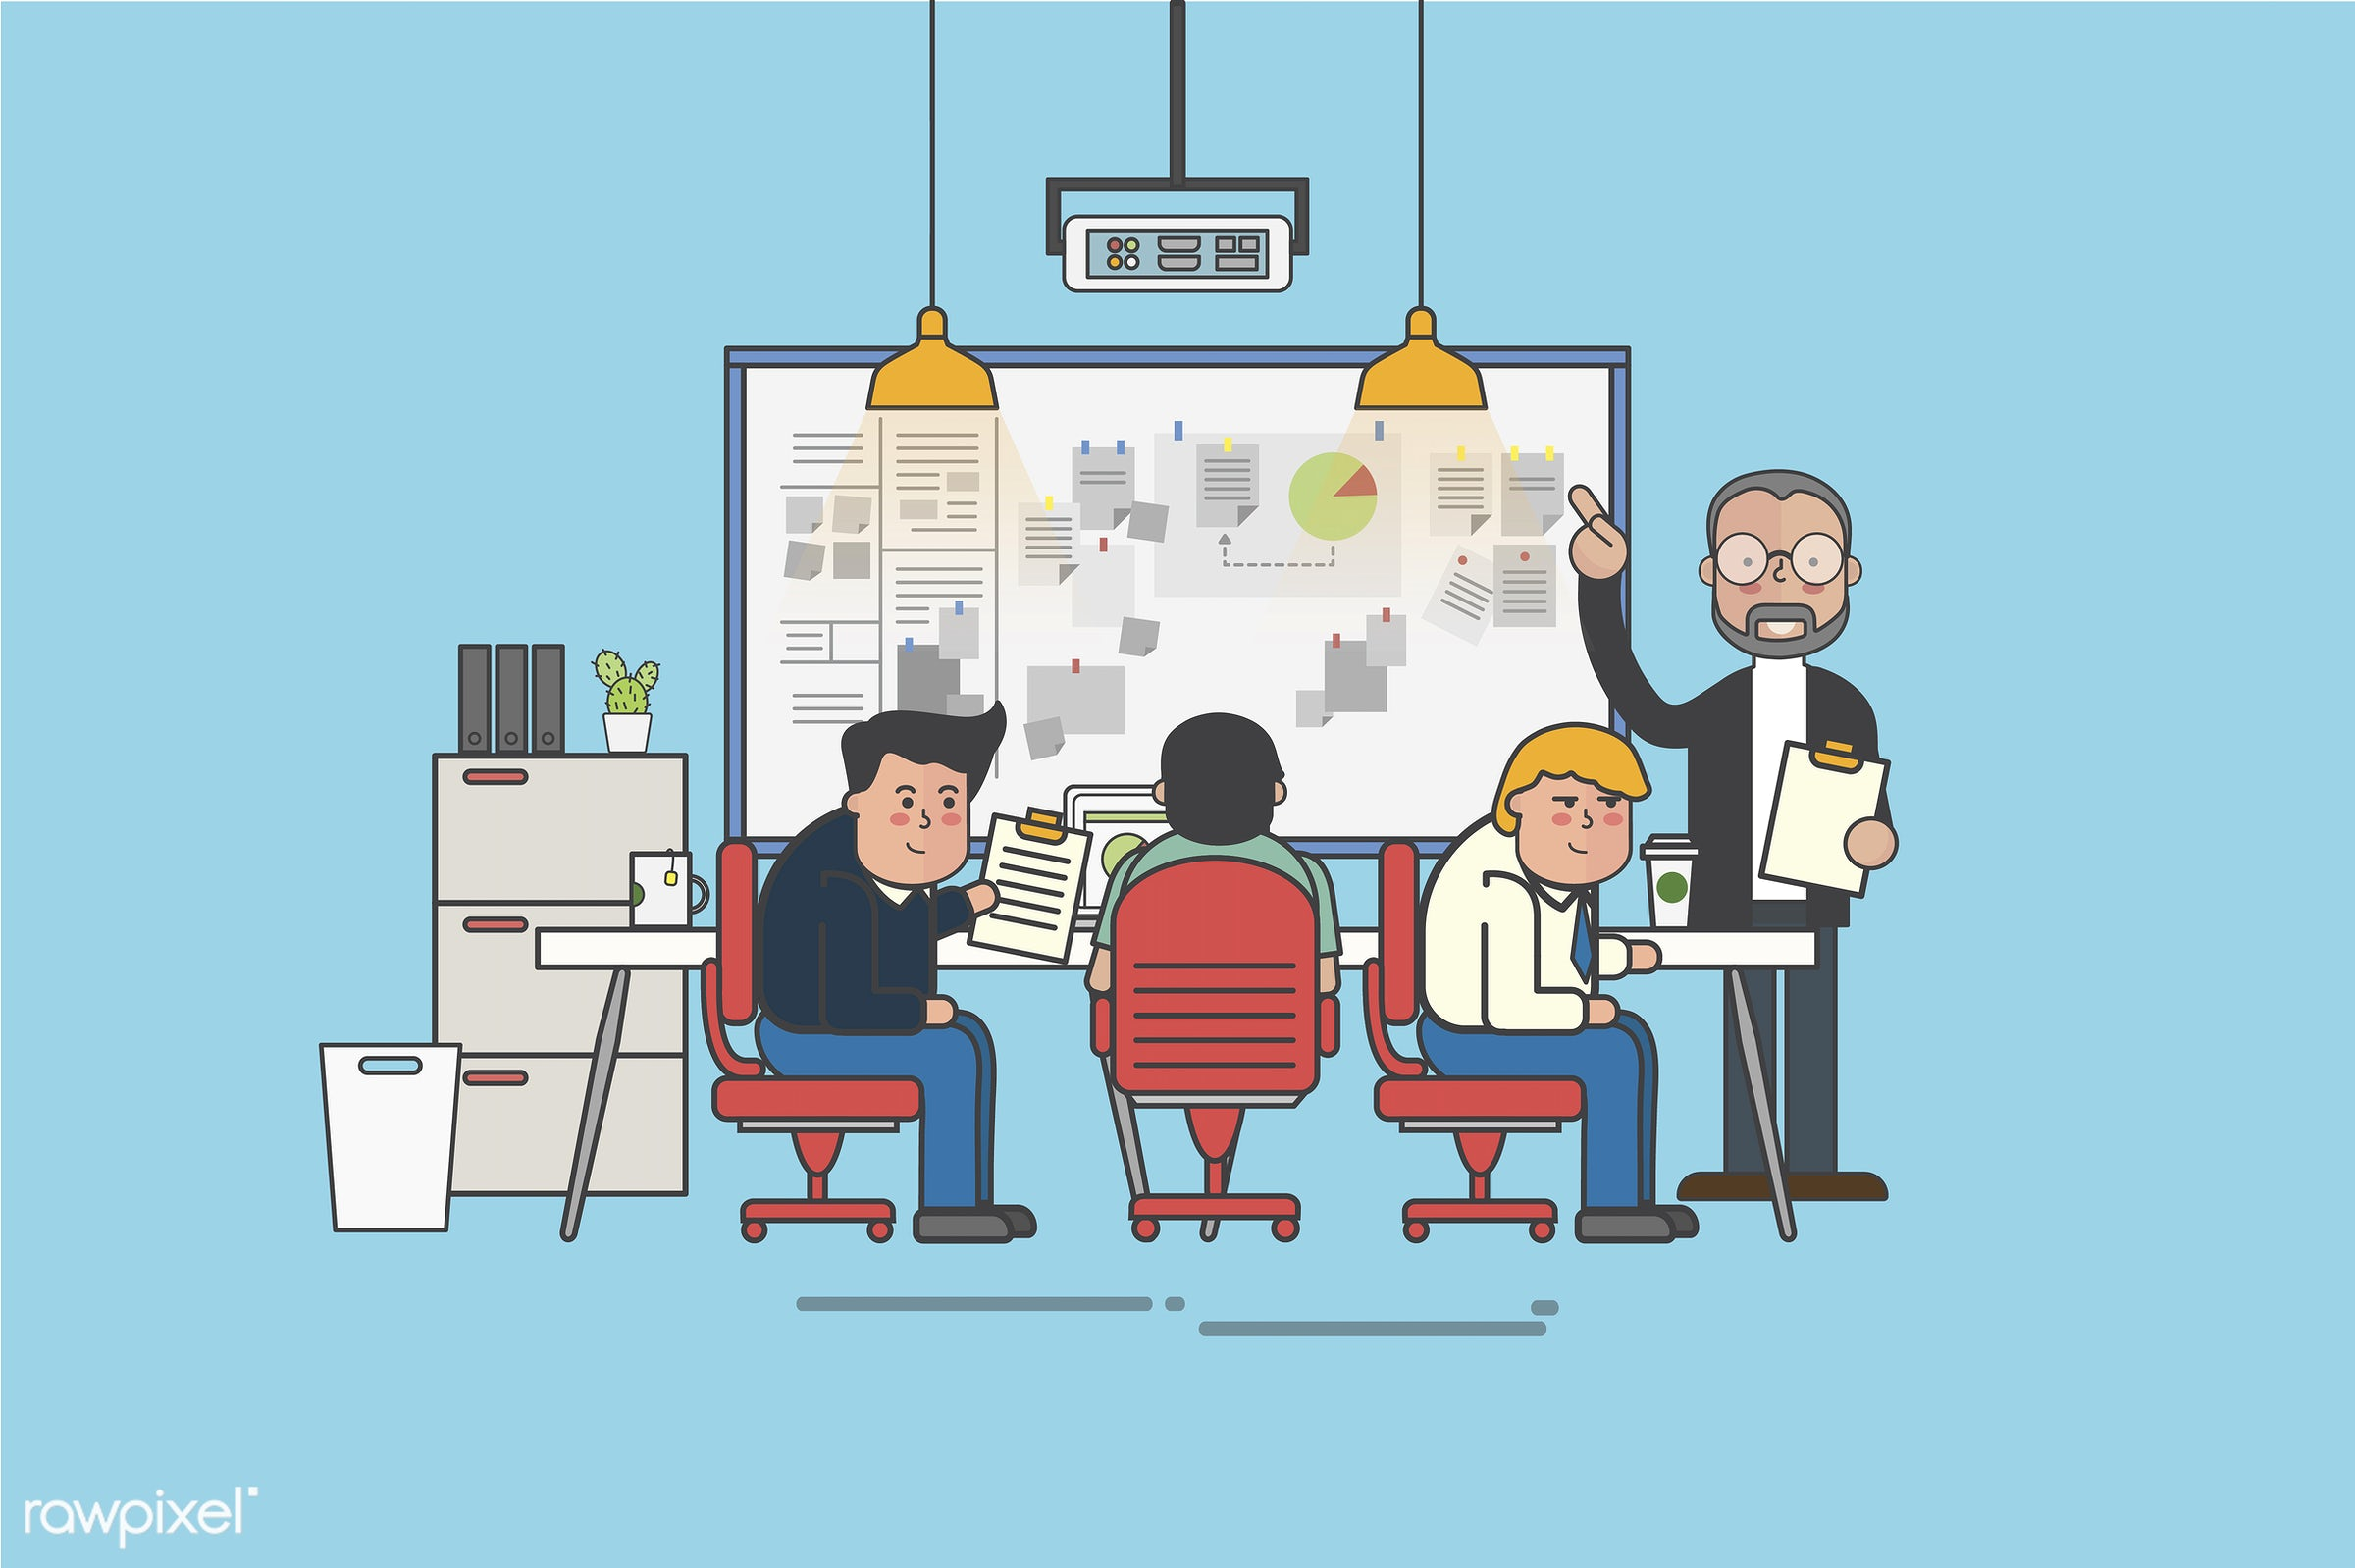 Illustration of an office and office workers - meeting, analysis, artwork, avatar, business, cartoon, character, conference...